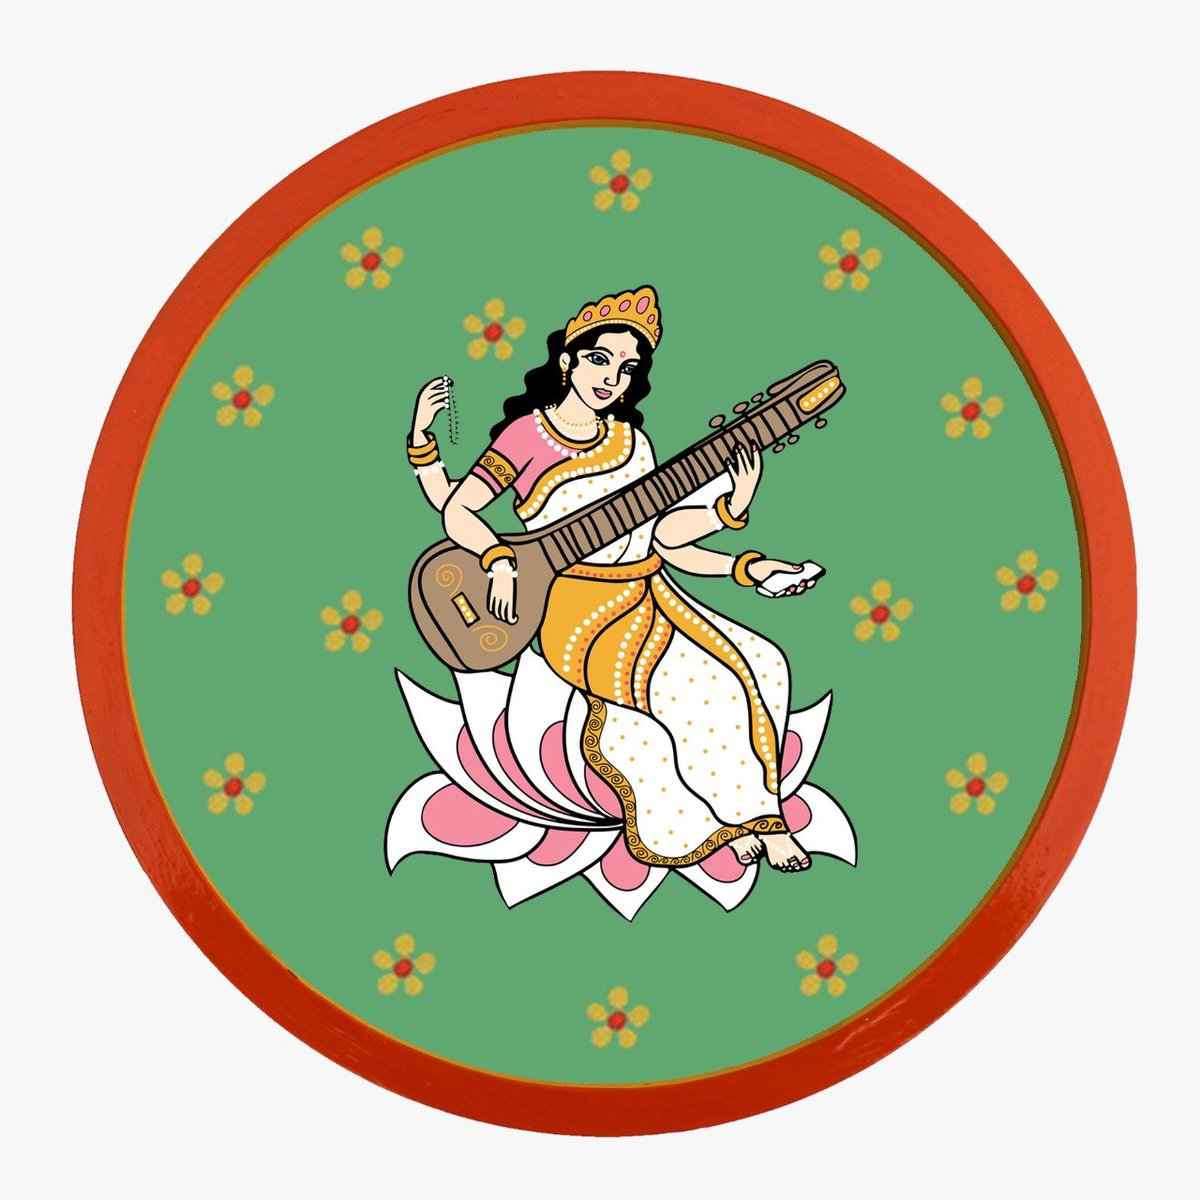 Goddess Saraswati on wooden plate- Painting of Goddess Saraswati- Wall Decor- Art Decor- Home Decor- Wall Hanging- Artwork- Art https://t.co/YvuvqinNkY #green #white #bedroom #artdeco #goddesssaraswati #hindugoddess #wallplate #woodenplate #decorativeplate #etsyshop https://t.co/MPNc5sloTa